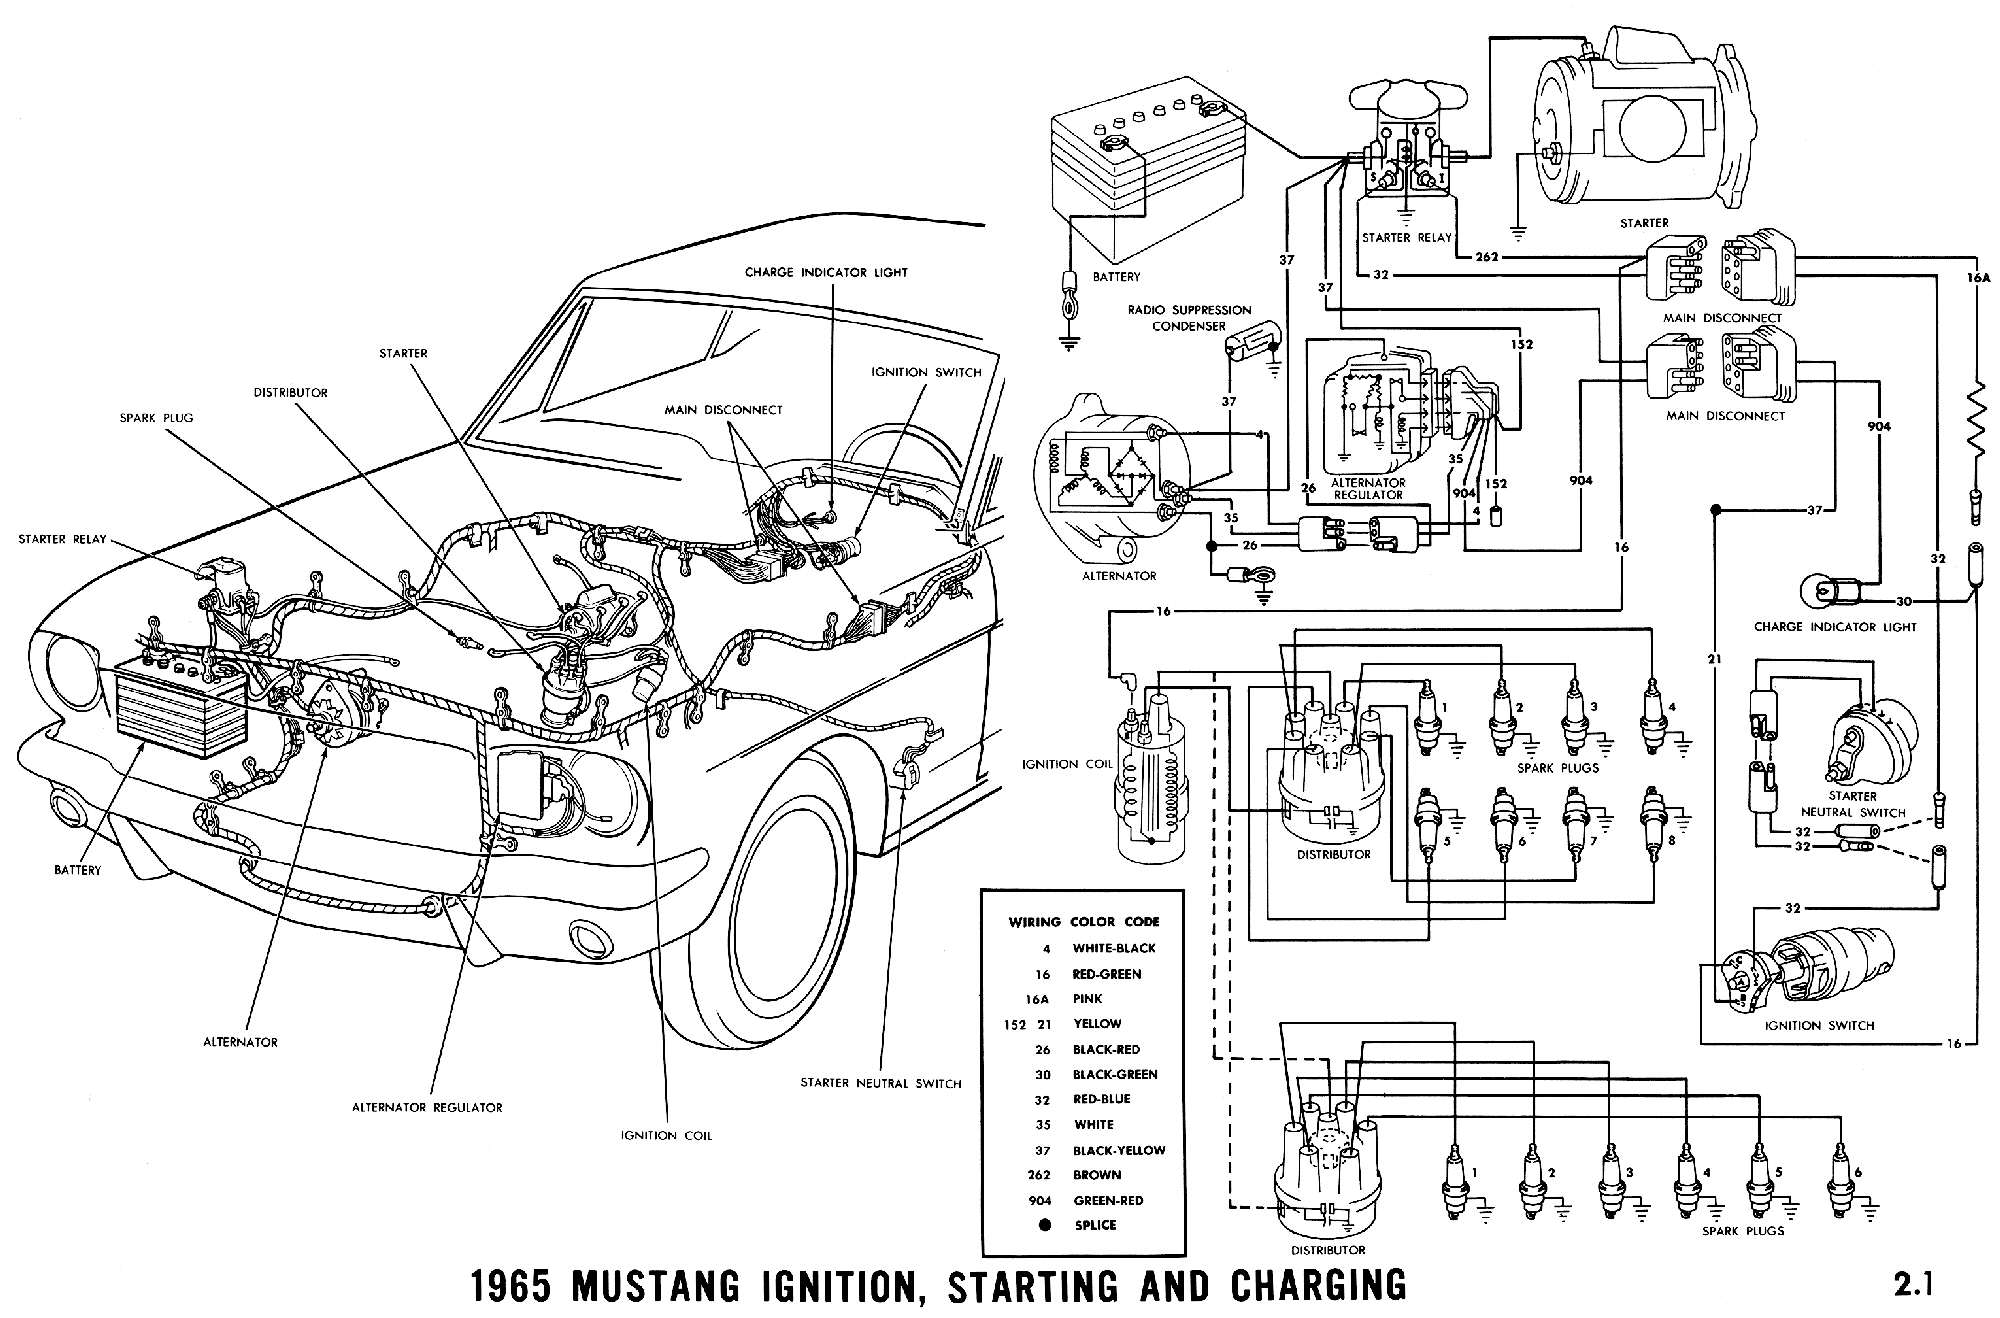 1965c 1965 mustang wiring diagrams average joe restoration 68 mustang headlight wiring diagram at readyjetset.co